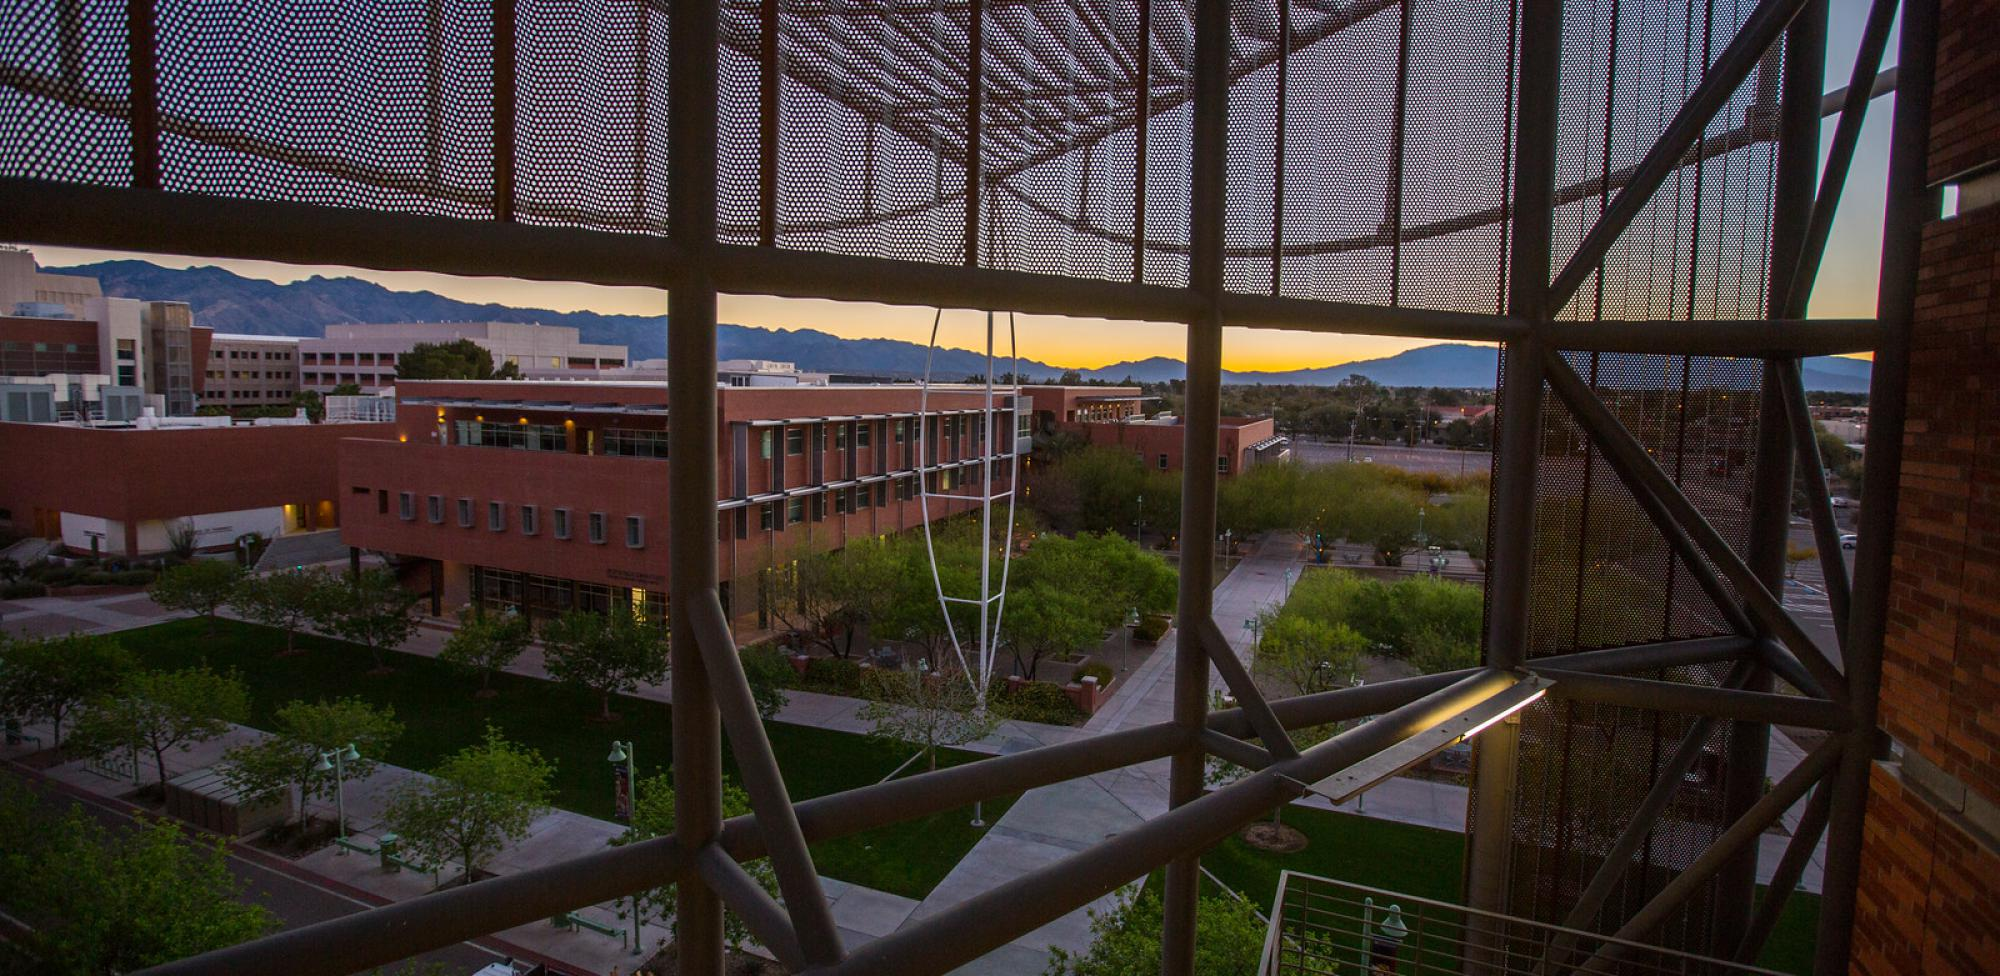 Bio5 Institute during sunset